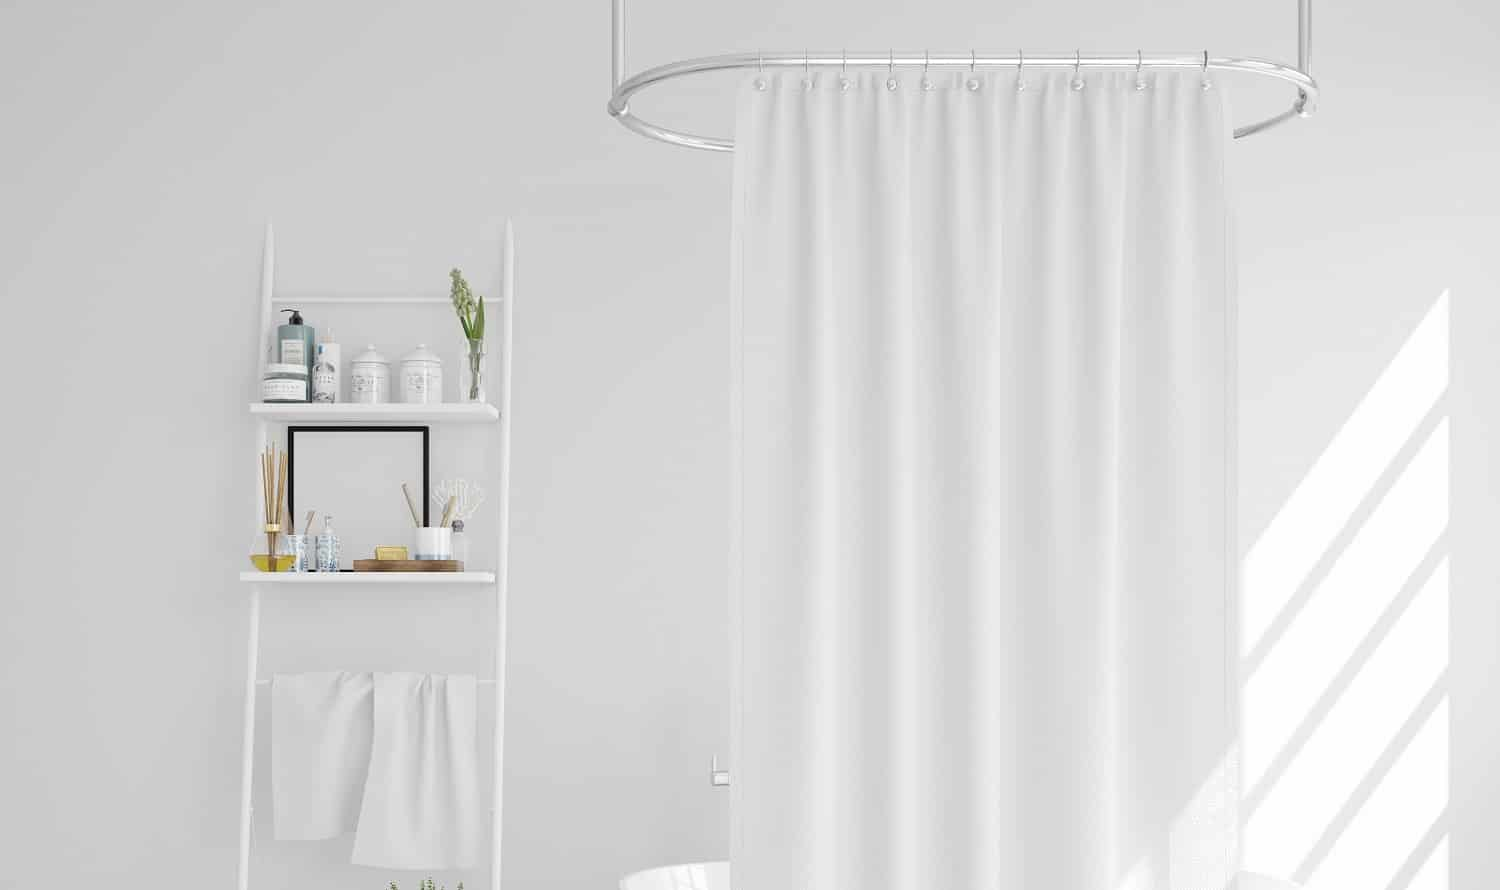 11 Best Shower Curtain Rod Of 2020 Reviewed Homesthetics Inspiring Ideas For Your Home